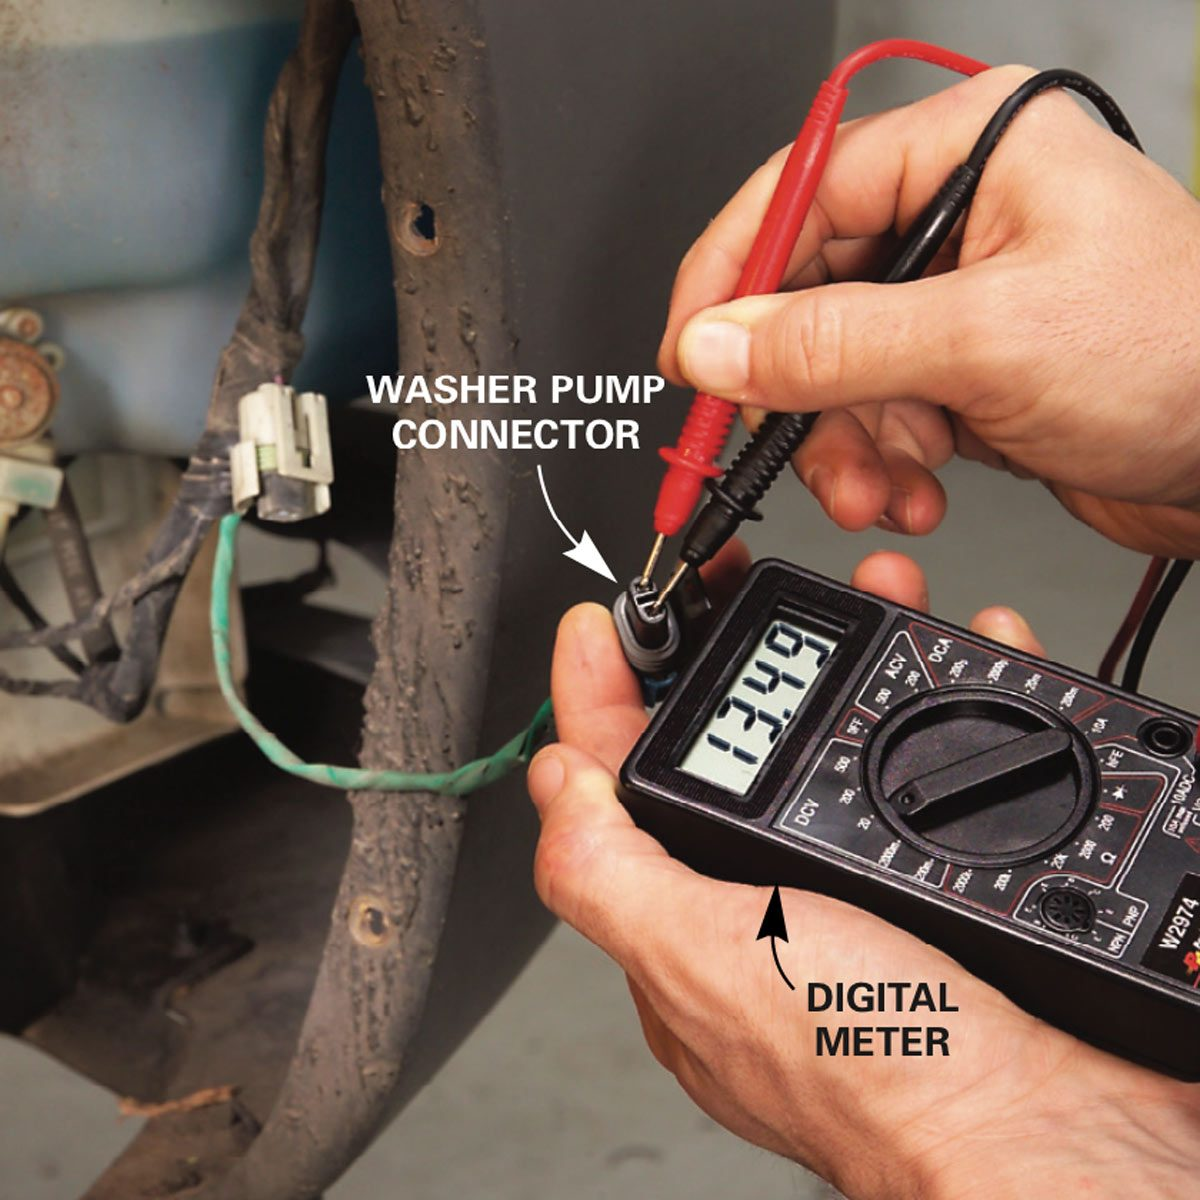 Check power with a washer pump connector